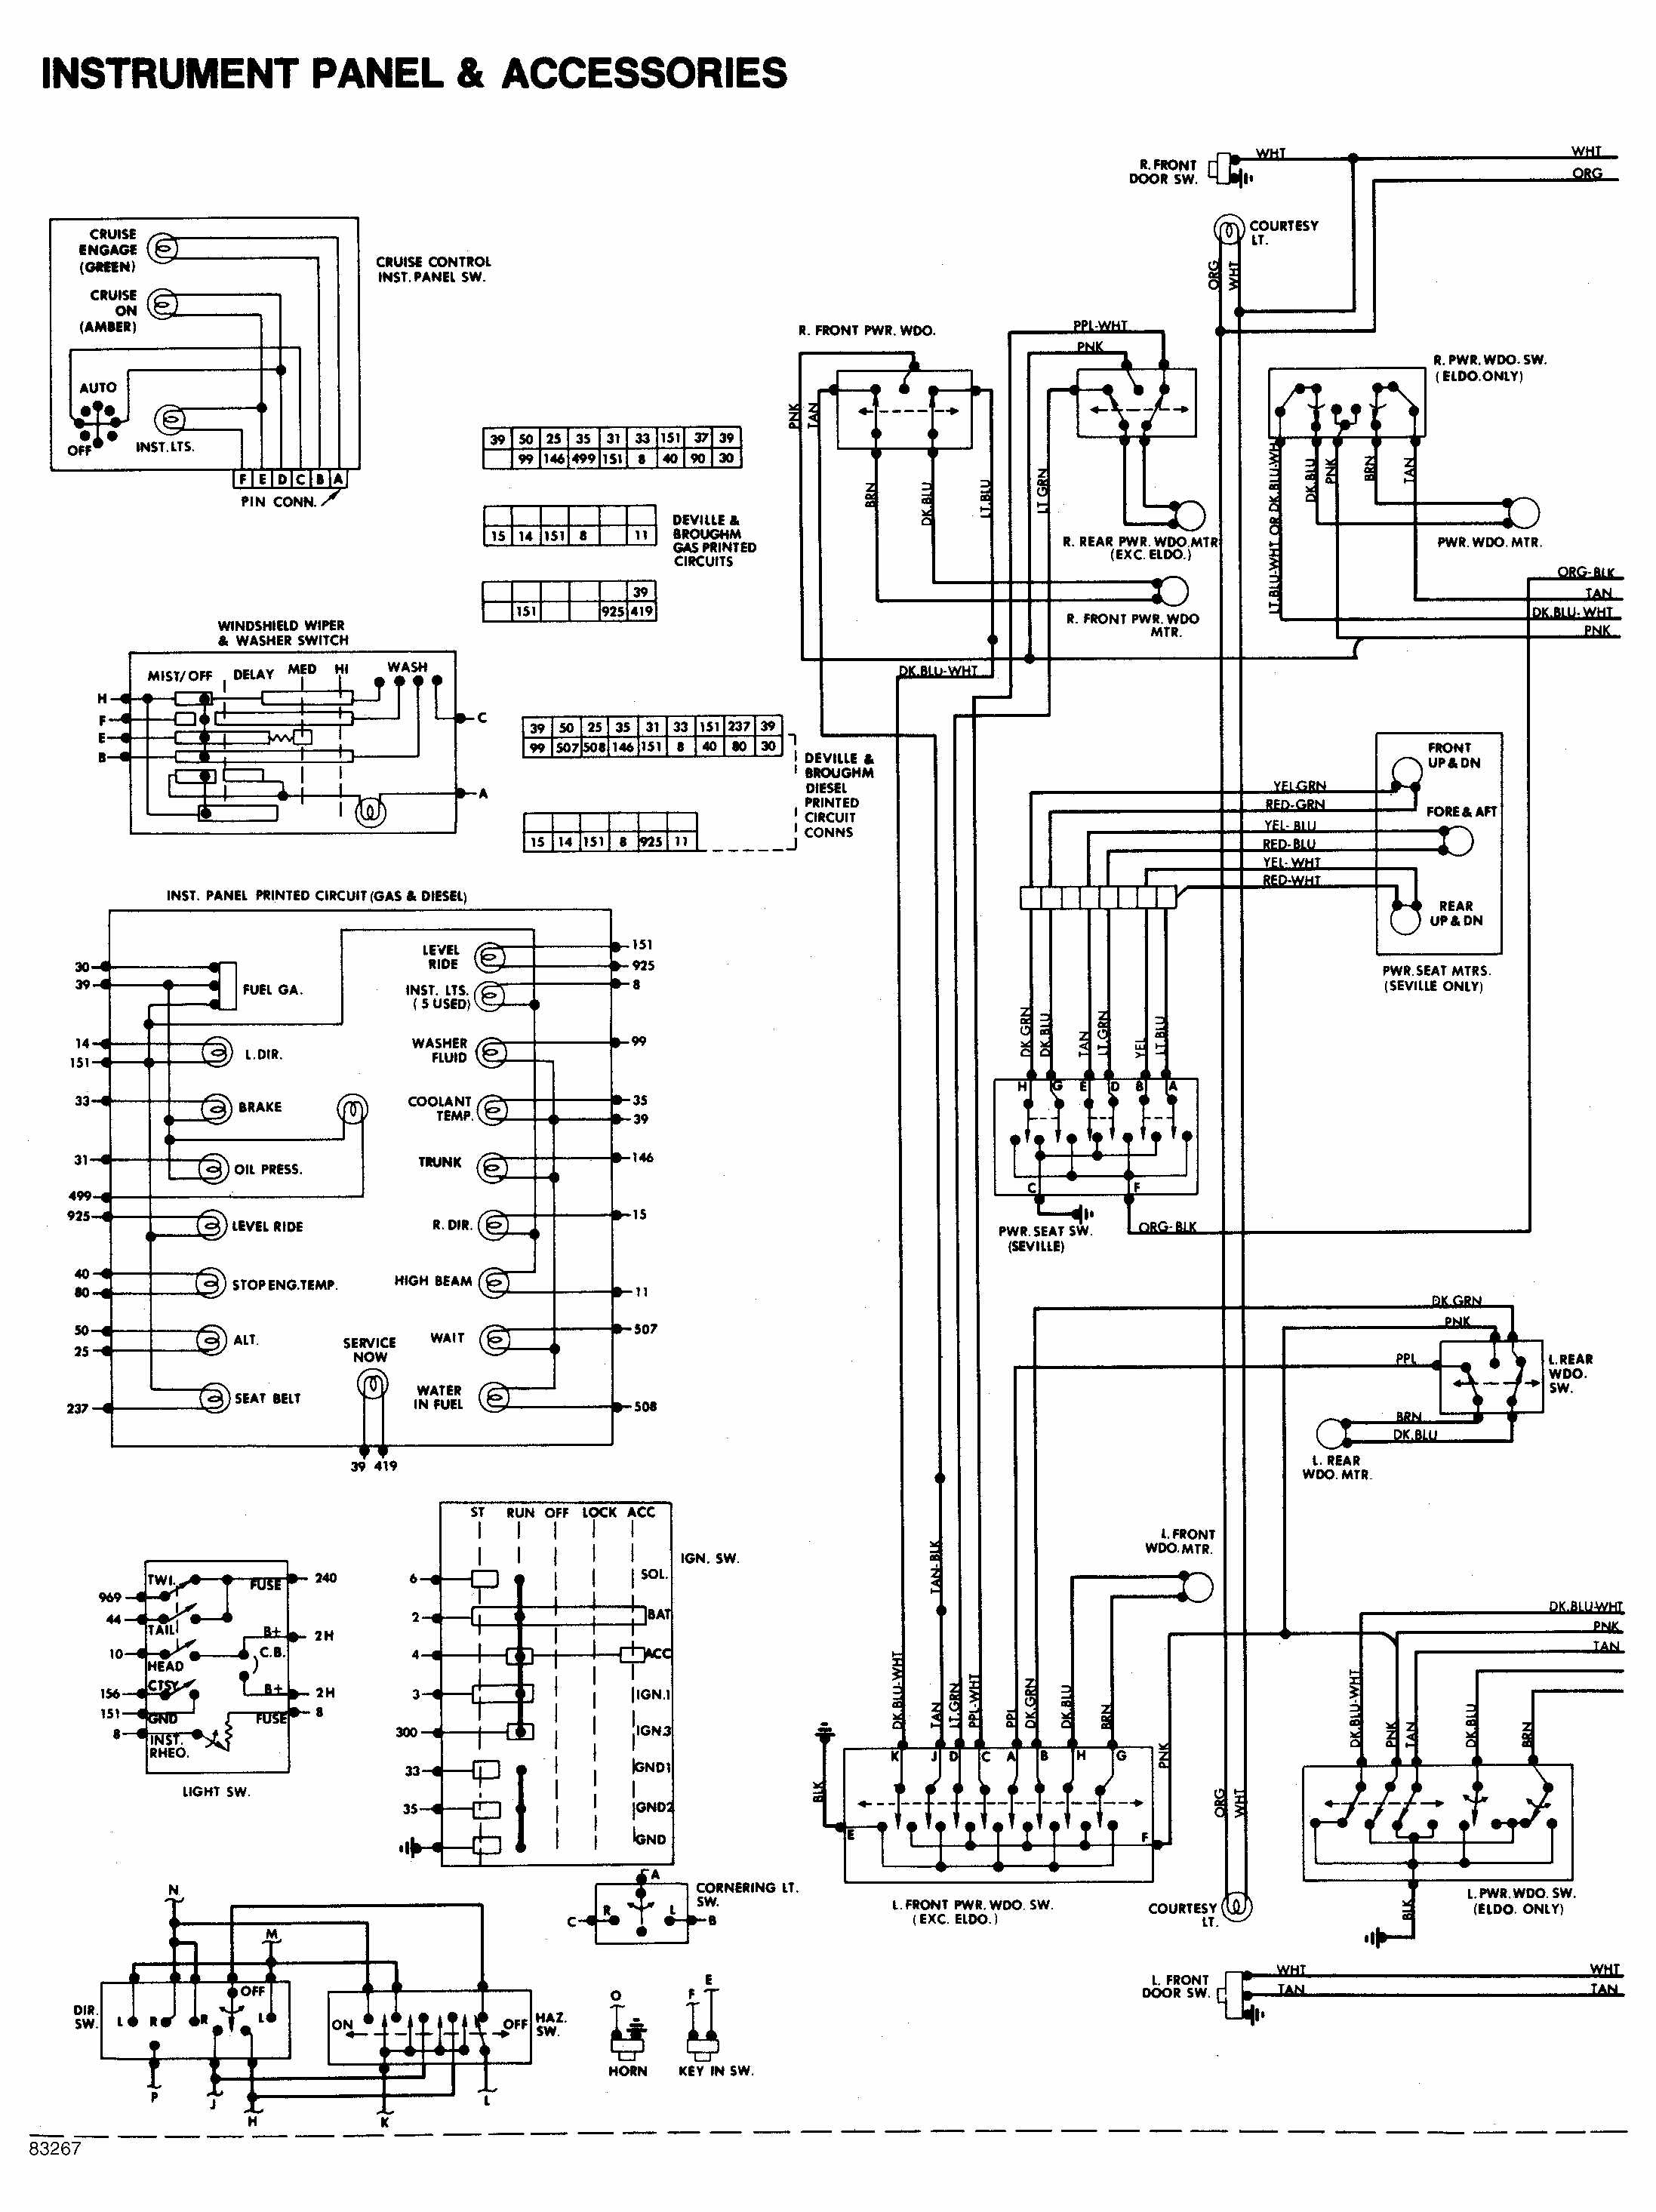 1980 Cadillac Fleetwood Wiring Diagram Free For You Discovery Motorhome Schematic Name Rh 3 Systembeimroulette De Excursion Battery House Rv Tv